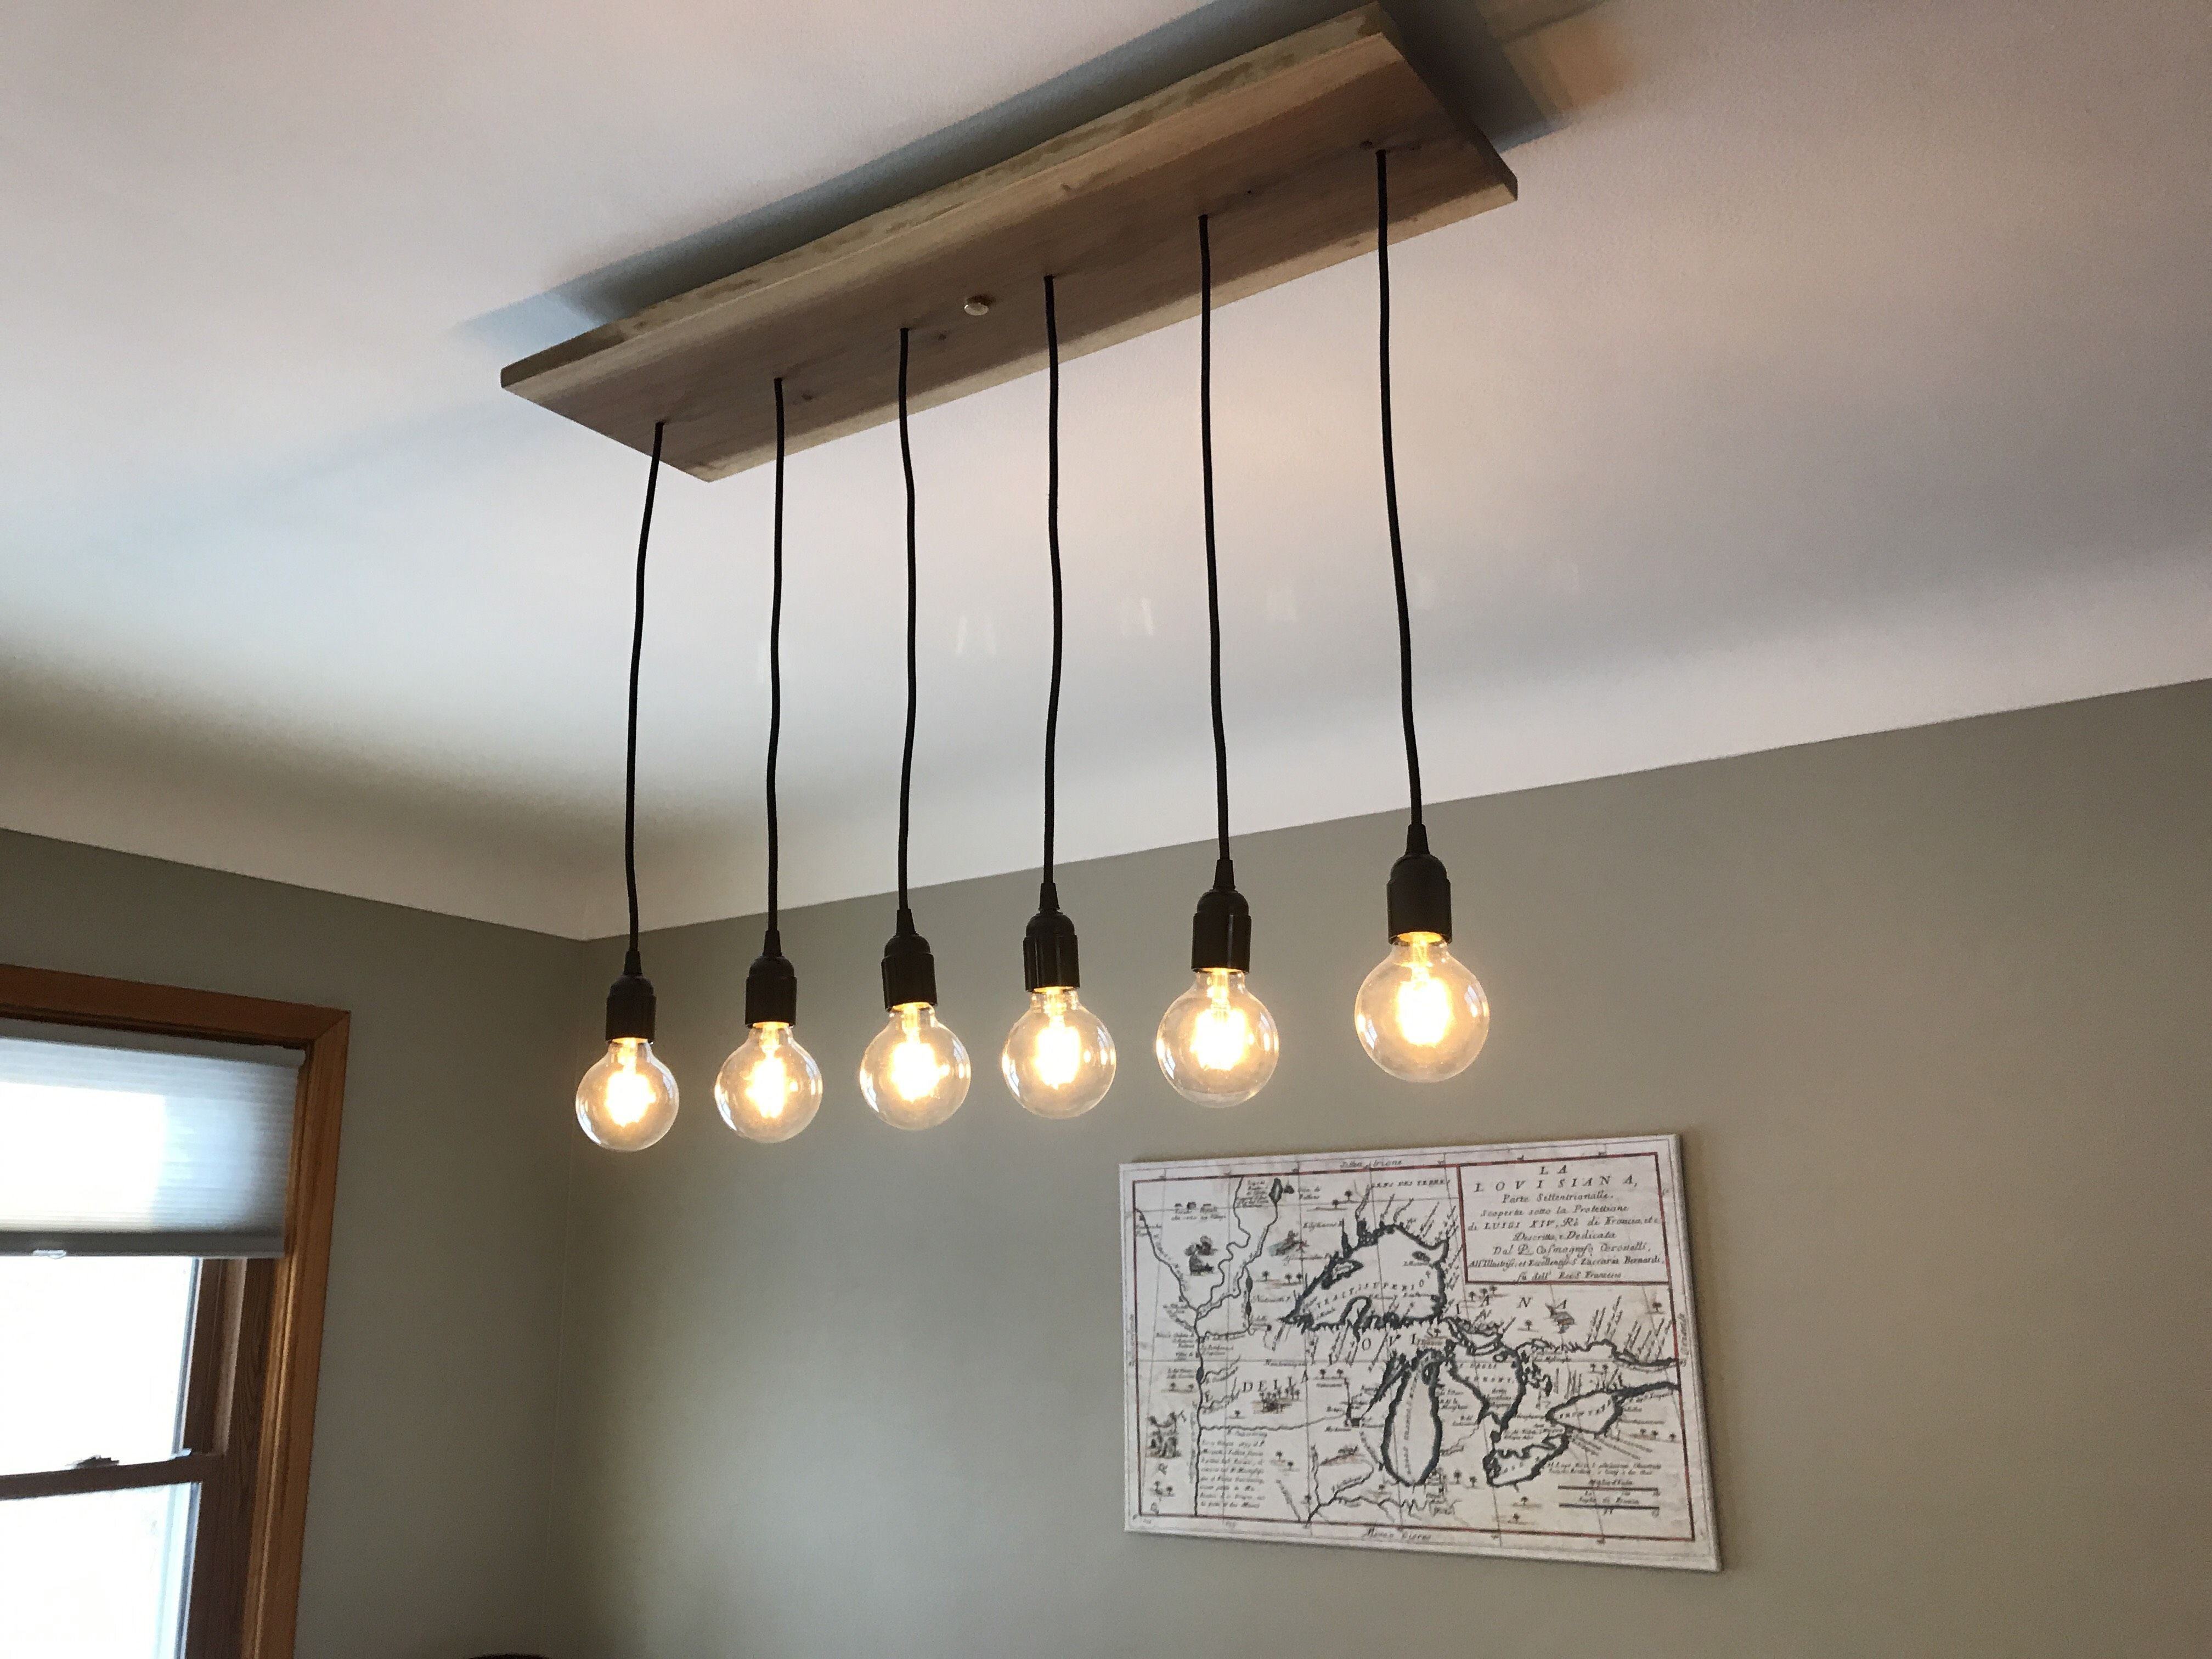 Wood Pendant Light - Dining Chandelier with 6 Pendant Lights ...